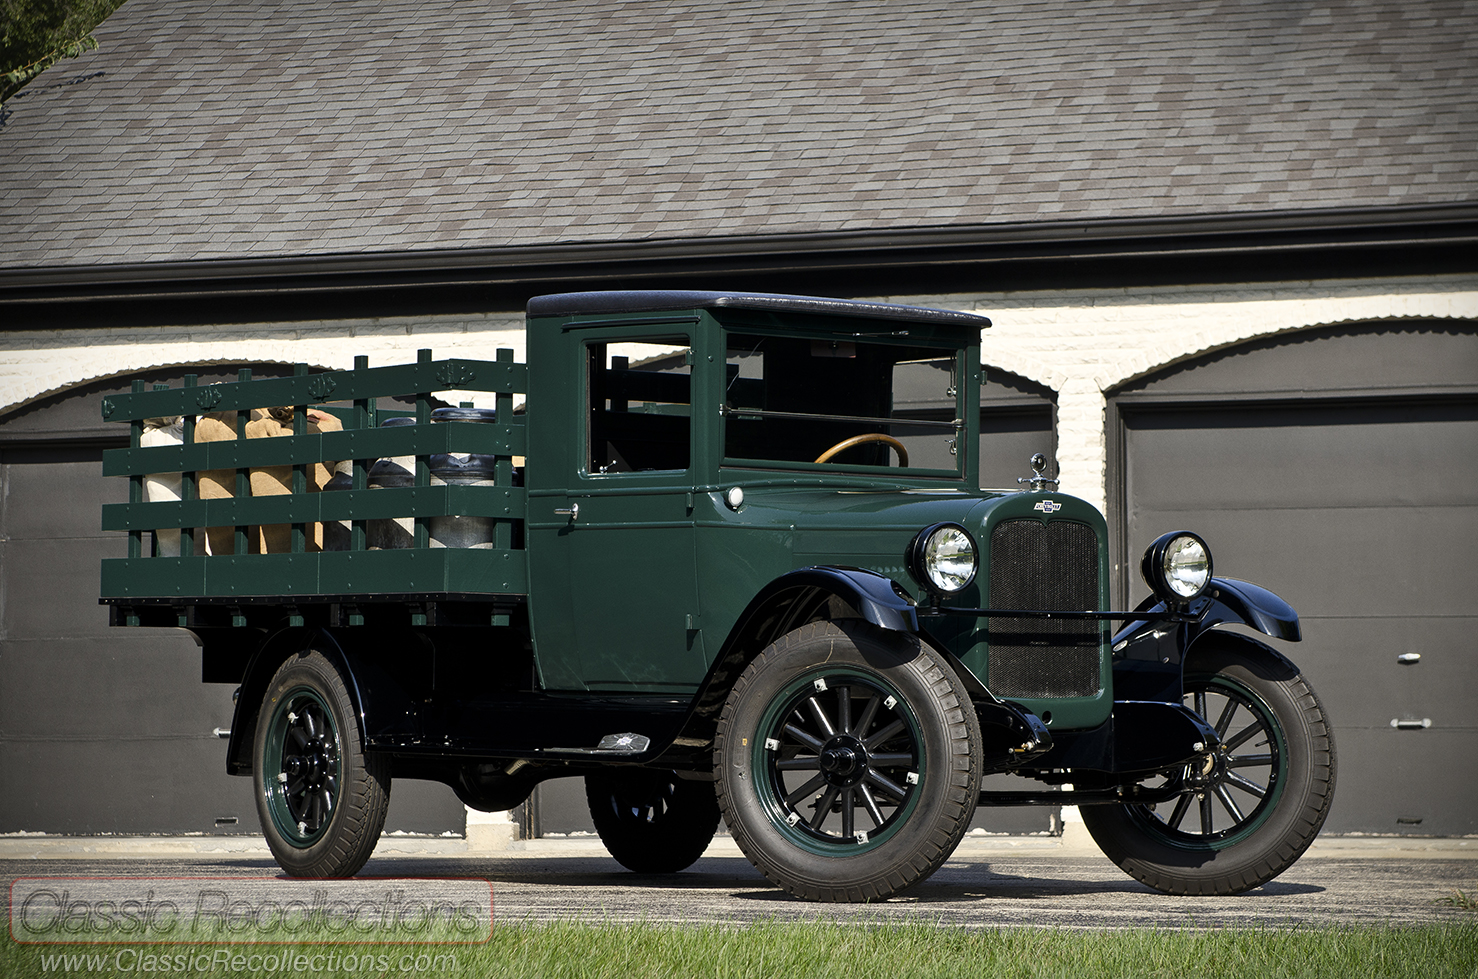 This 1927 chevroelt capitol has been restored to factory specifications